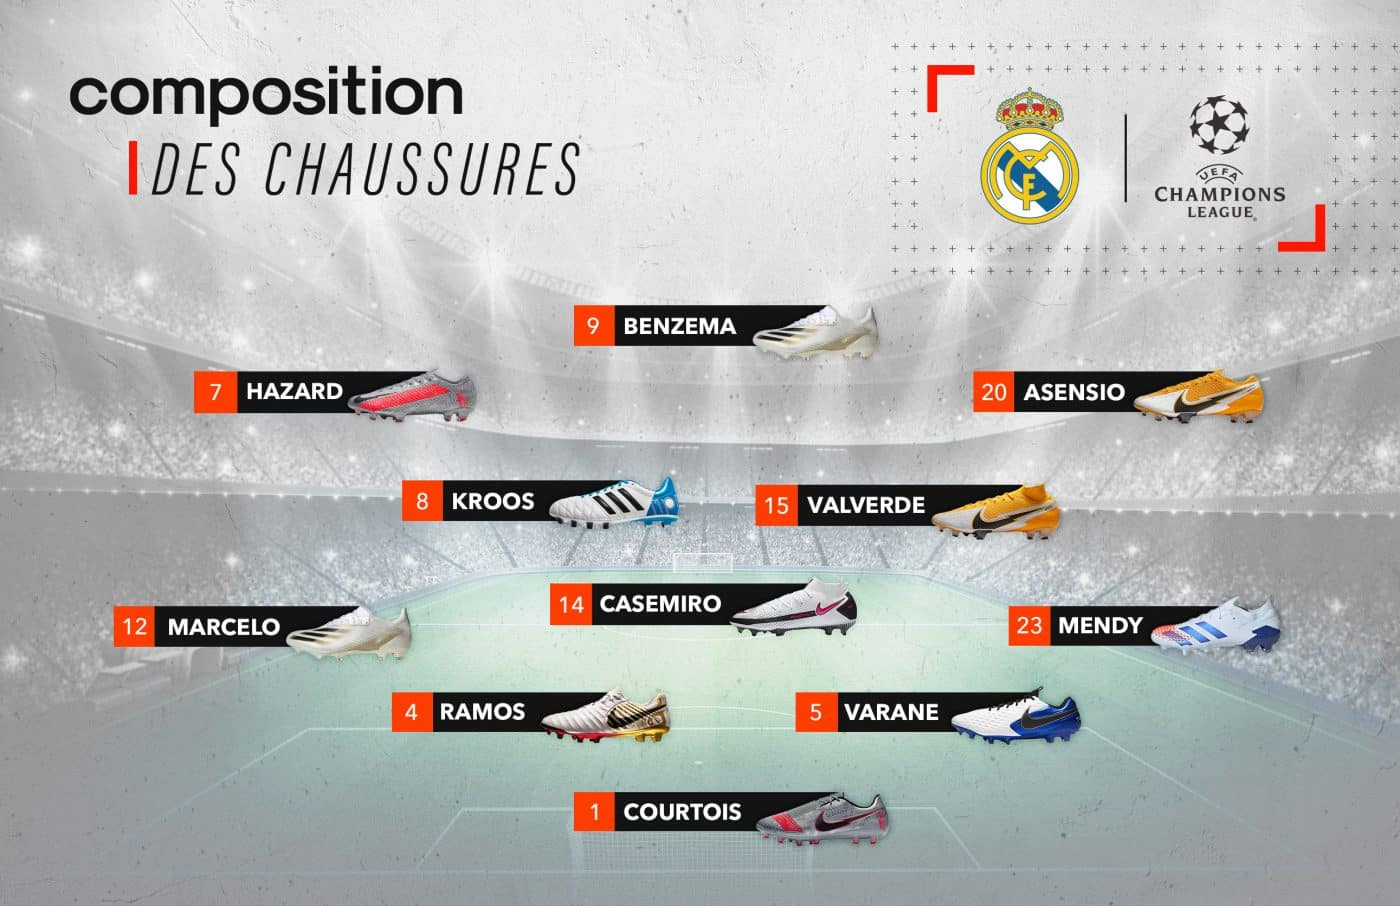 compositions-chaussures-real-madrid-inter-milan-footpack-1